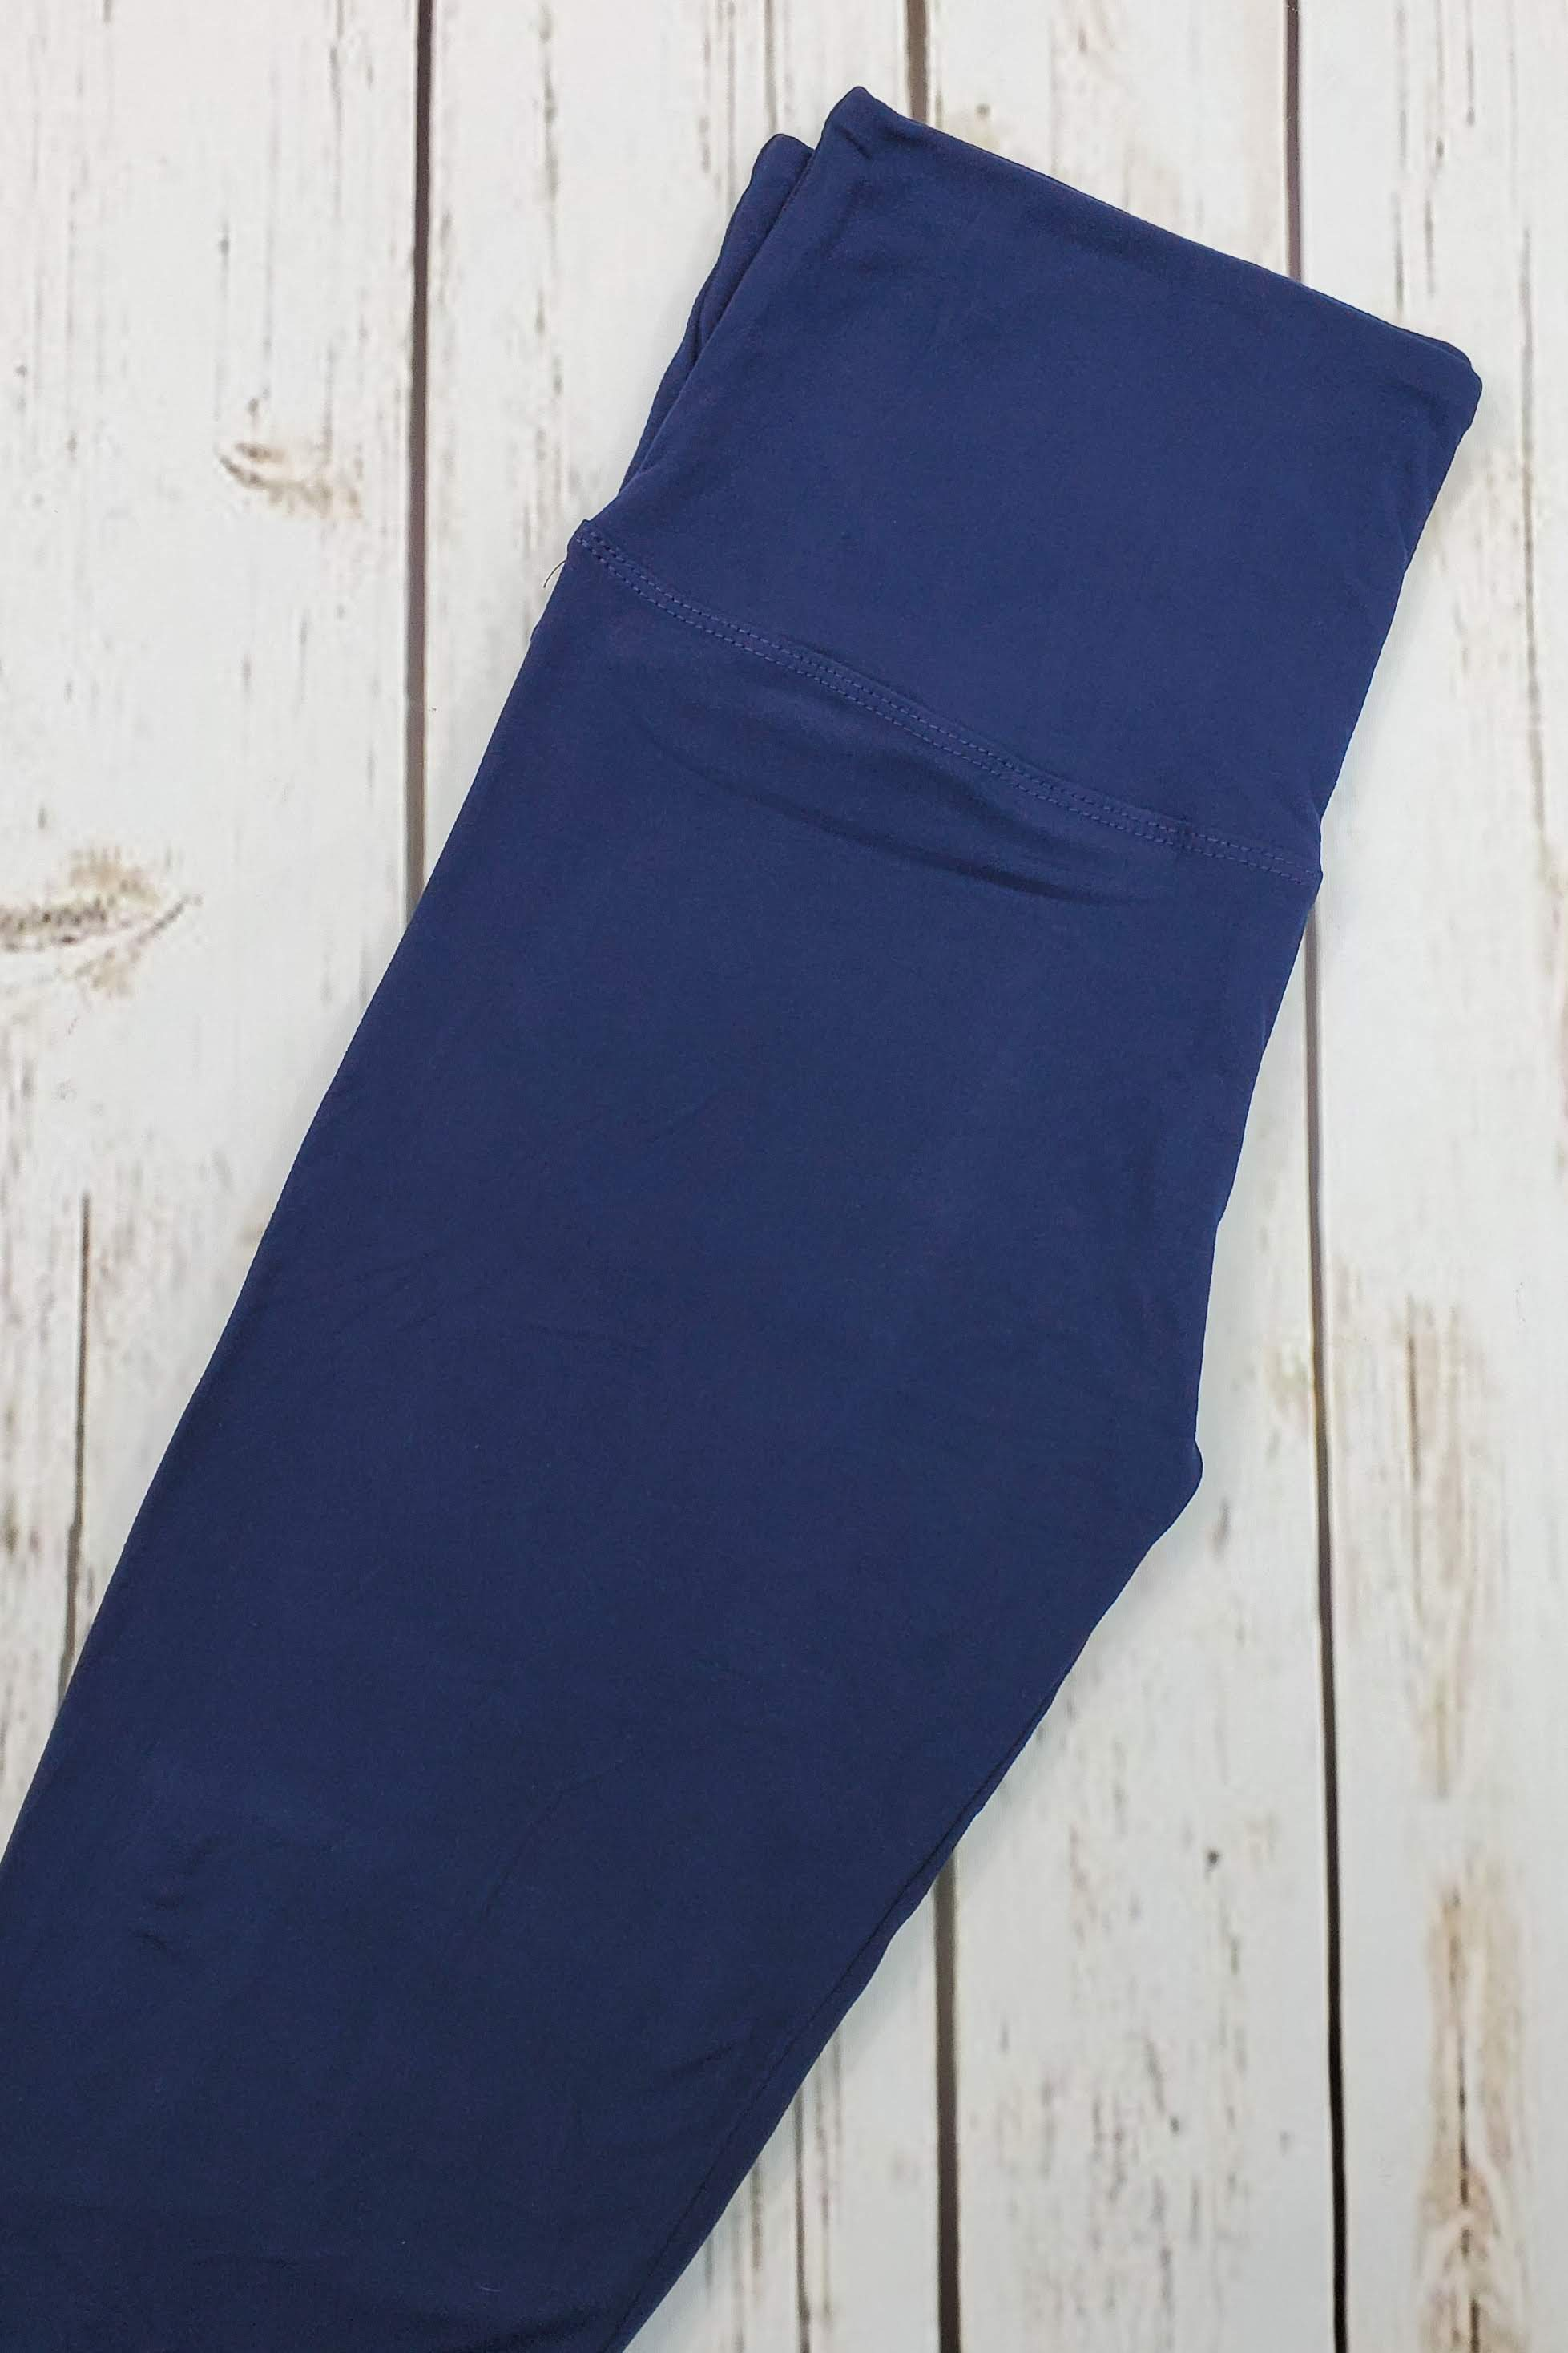 Solid Navy Leggings Yoga Band *SPECIALIZED*